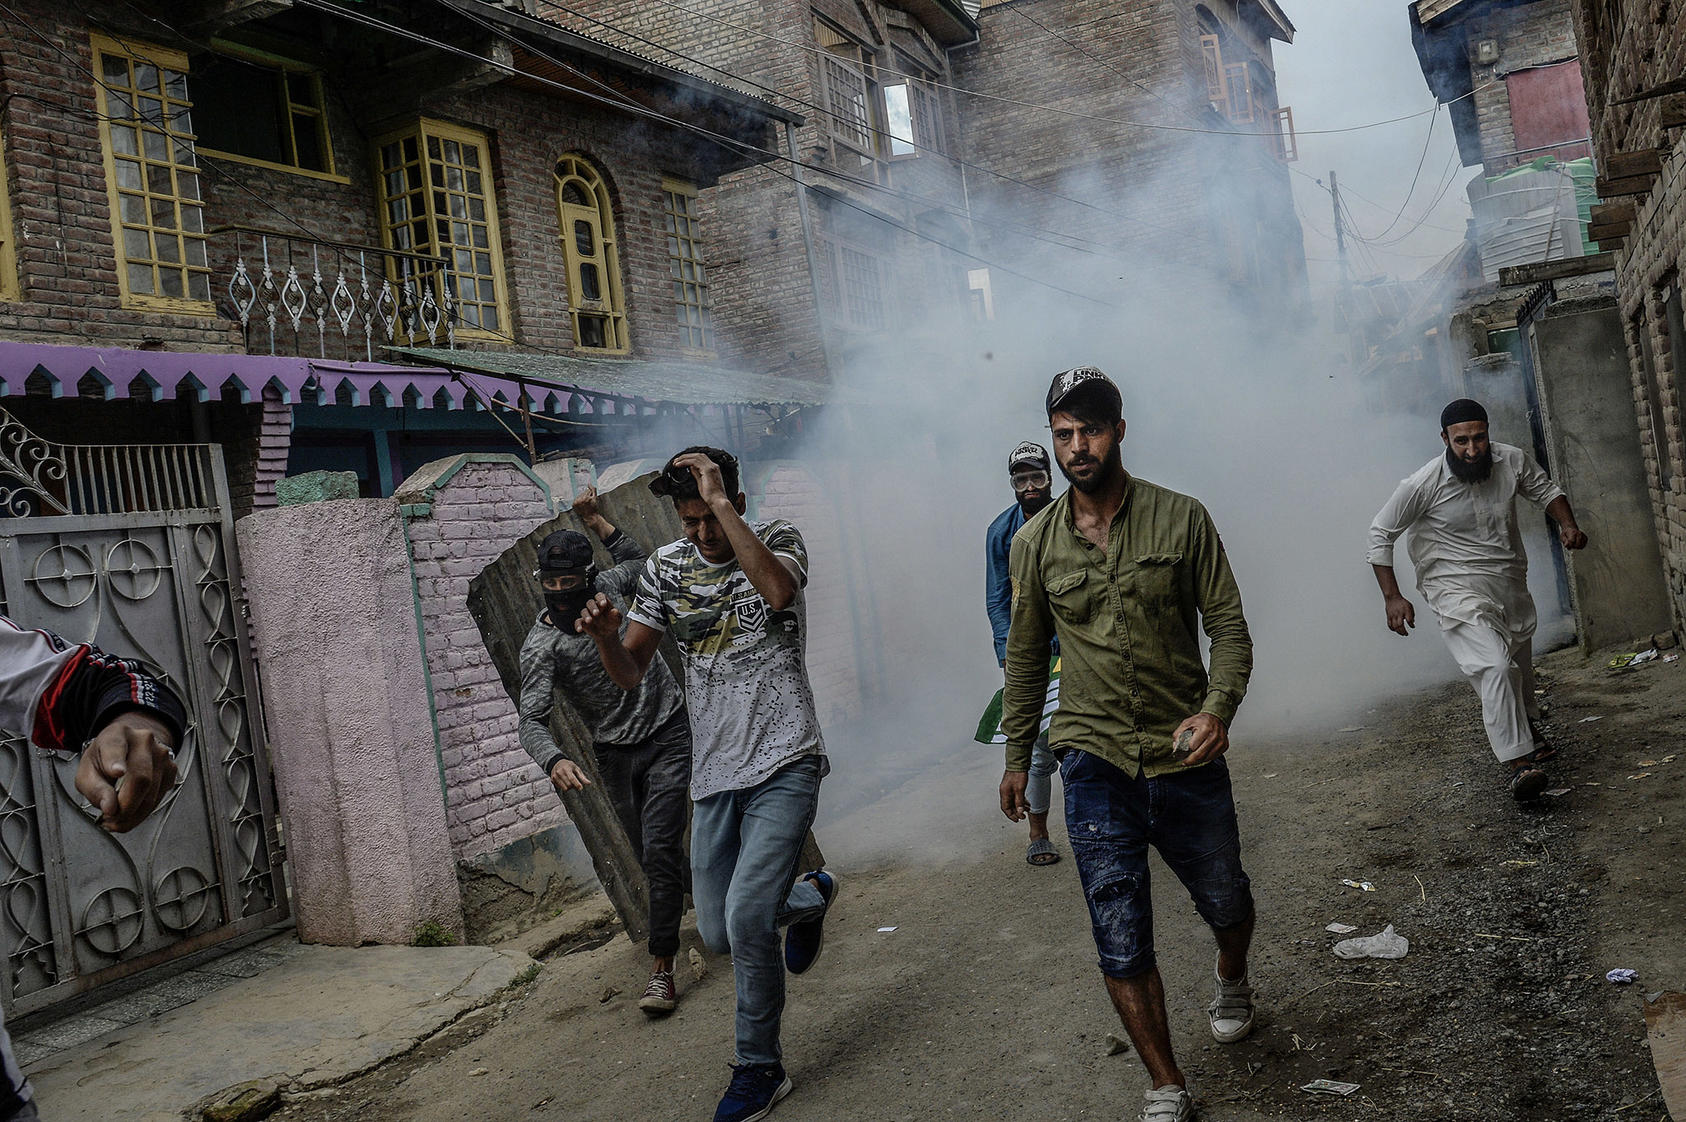 A violent protest on the outskirts of Srinagar, in Jammu and Kashmir, on August 16, 2019, after India stripped the Kashmir region of its autonomy. (Atul Loke/New York Times)